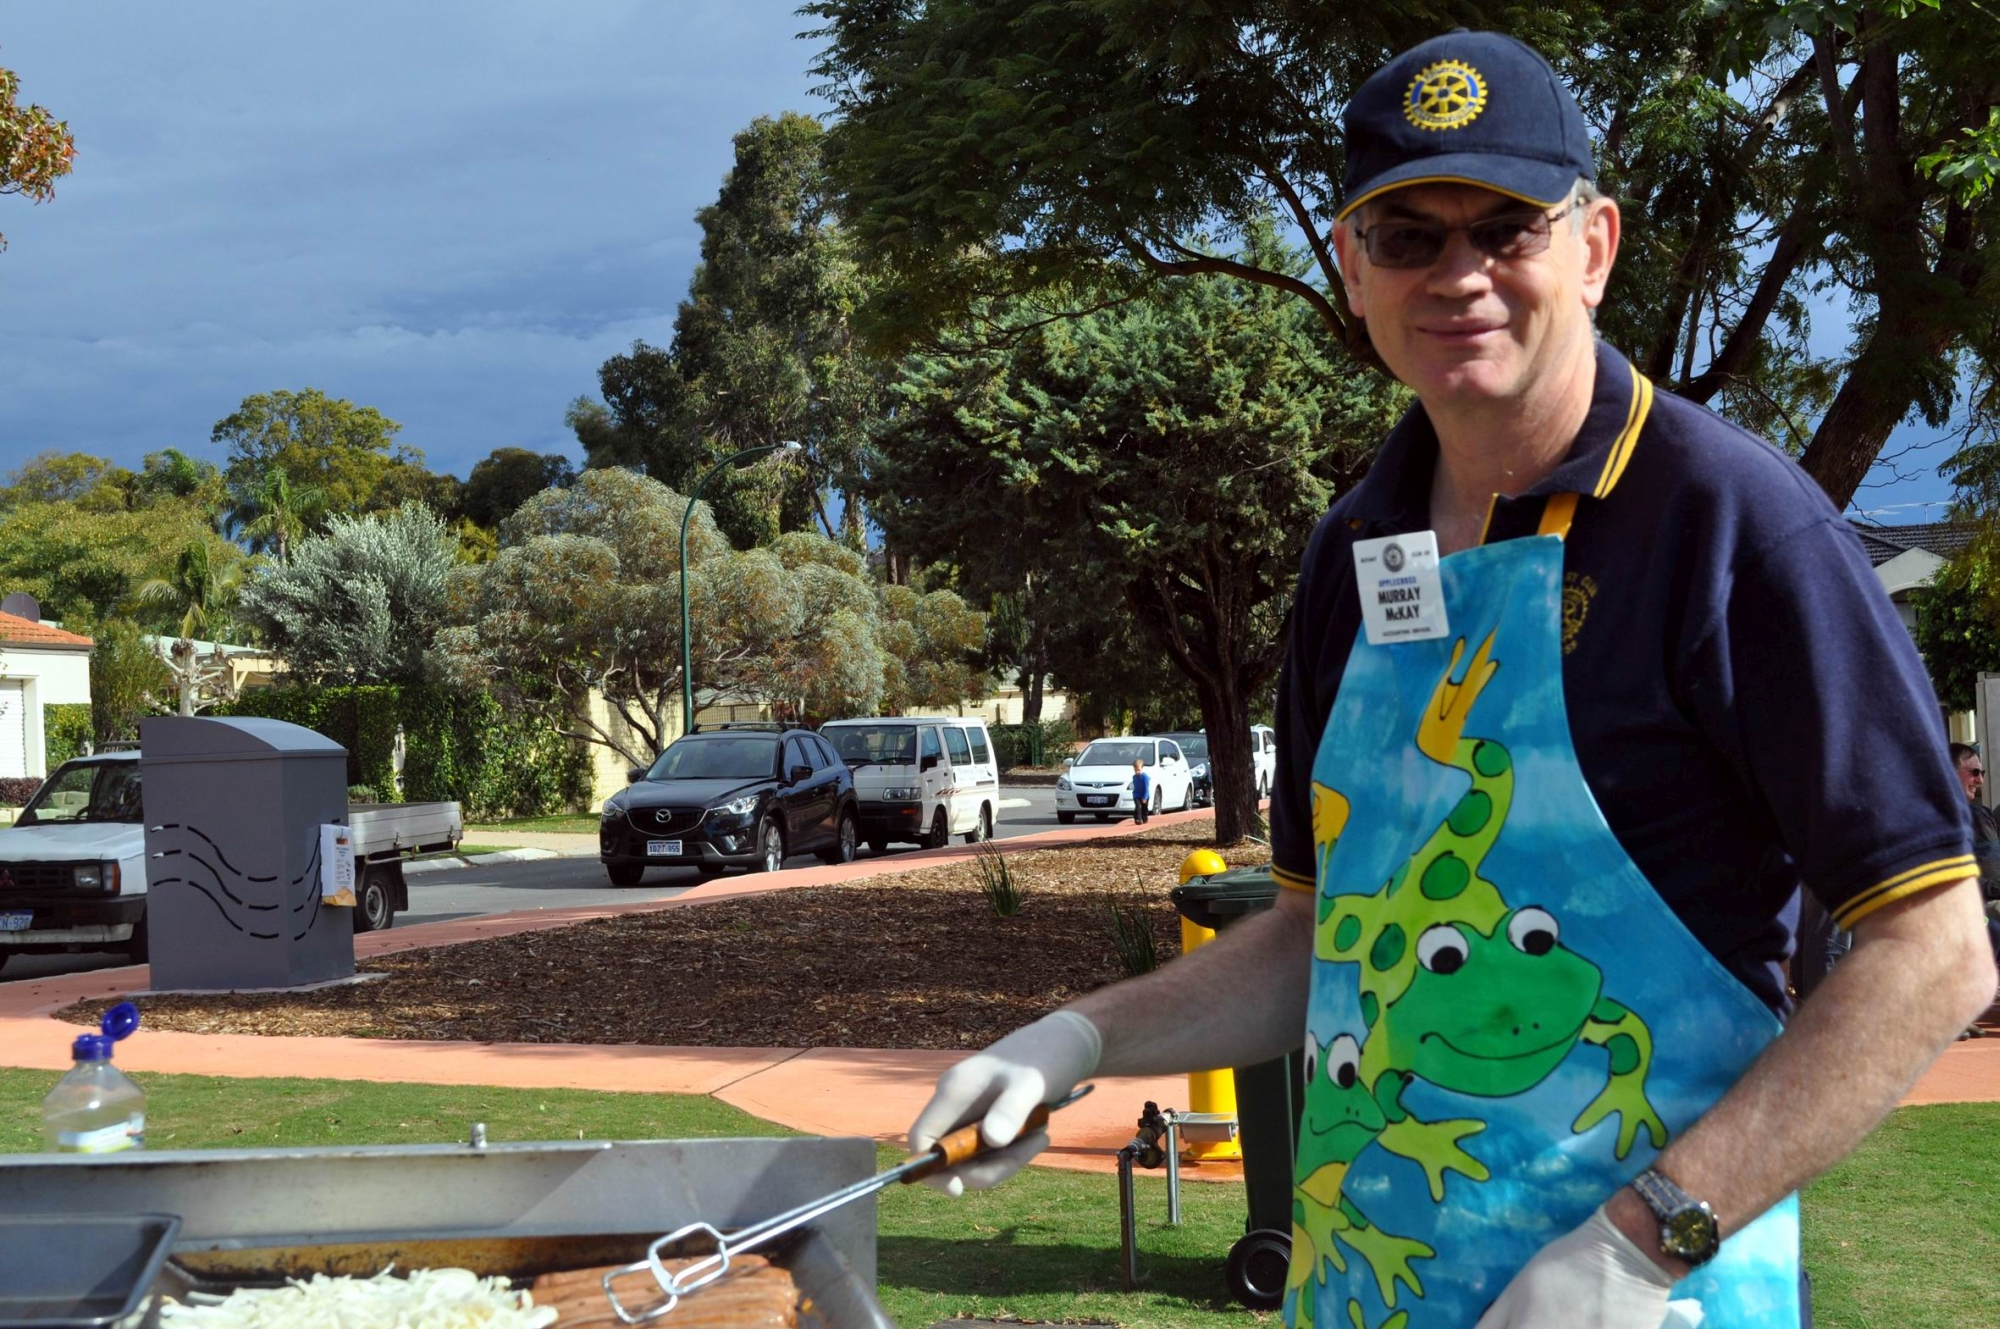 Applecross Rotary Club member Murray McKay cooking the barbecue.